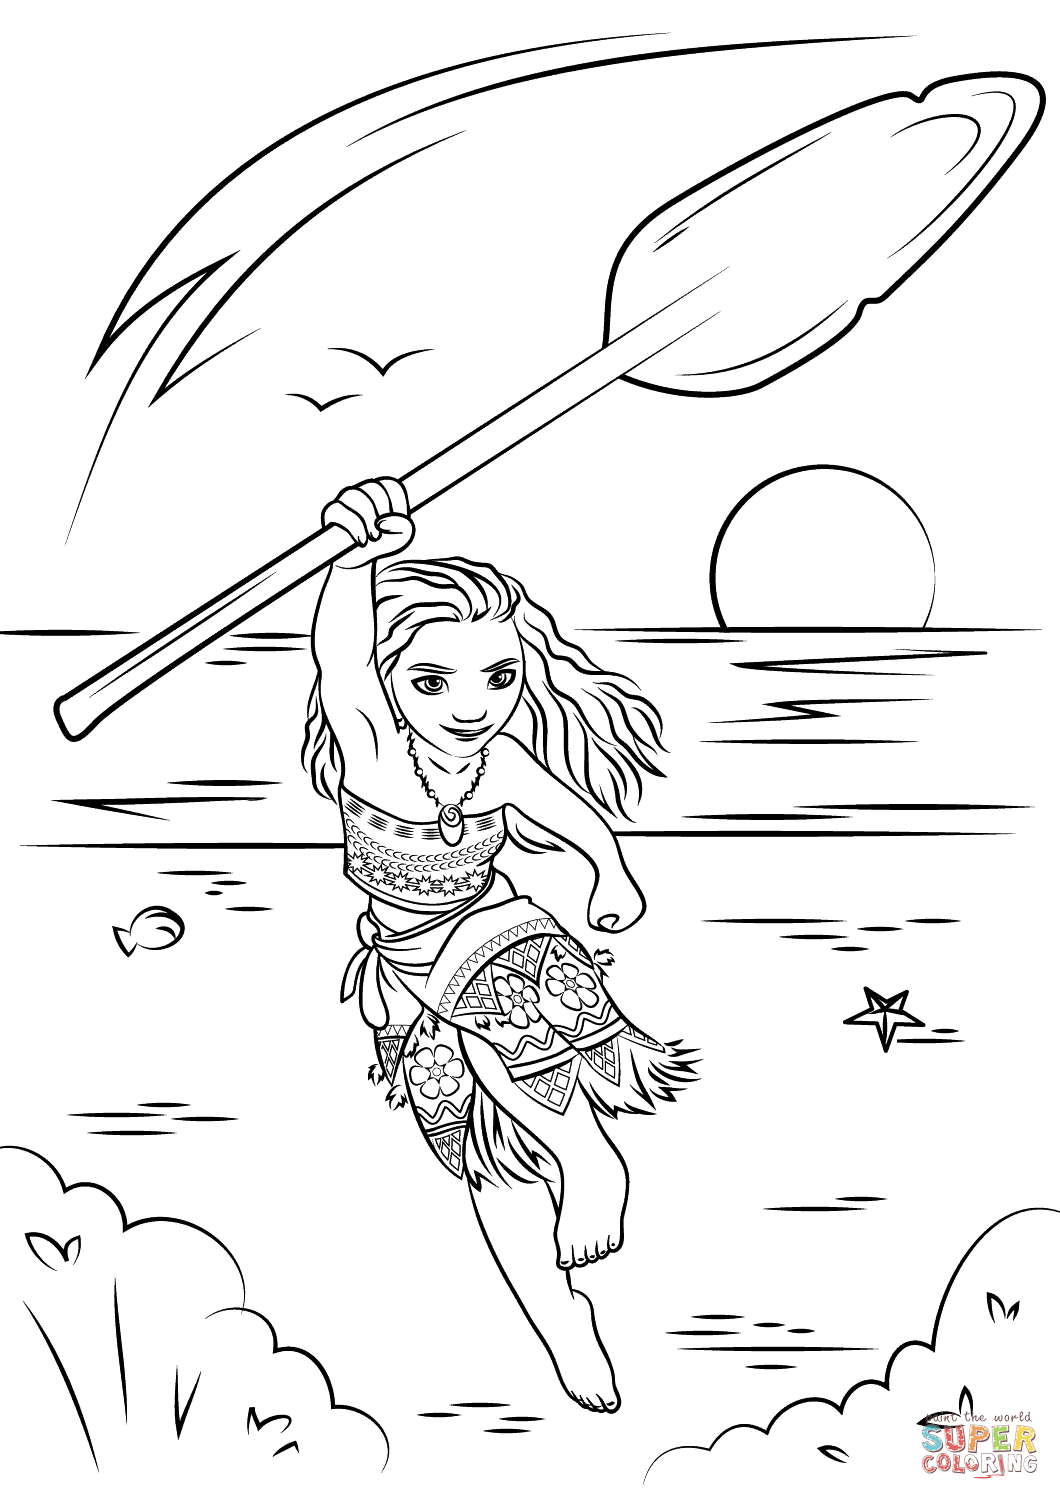 Moana from Moana Coloring Page - Free Coloring Pages Online